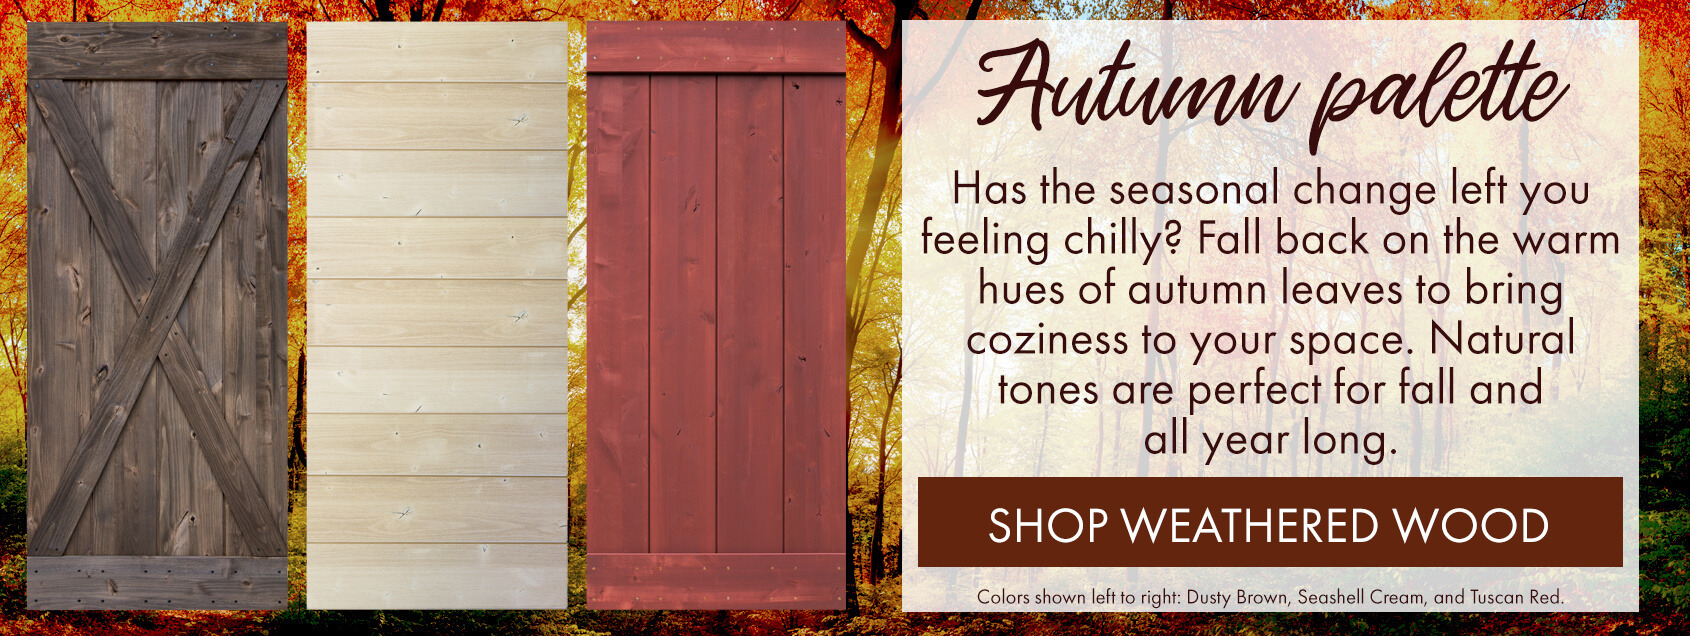 sliding barn doors for fall in autumn colors